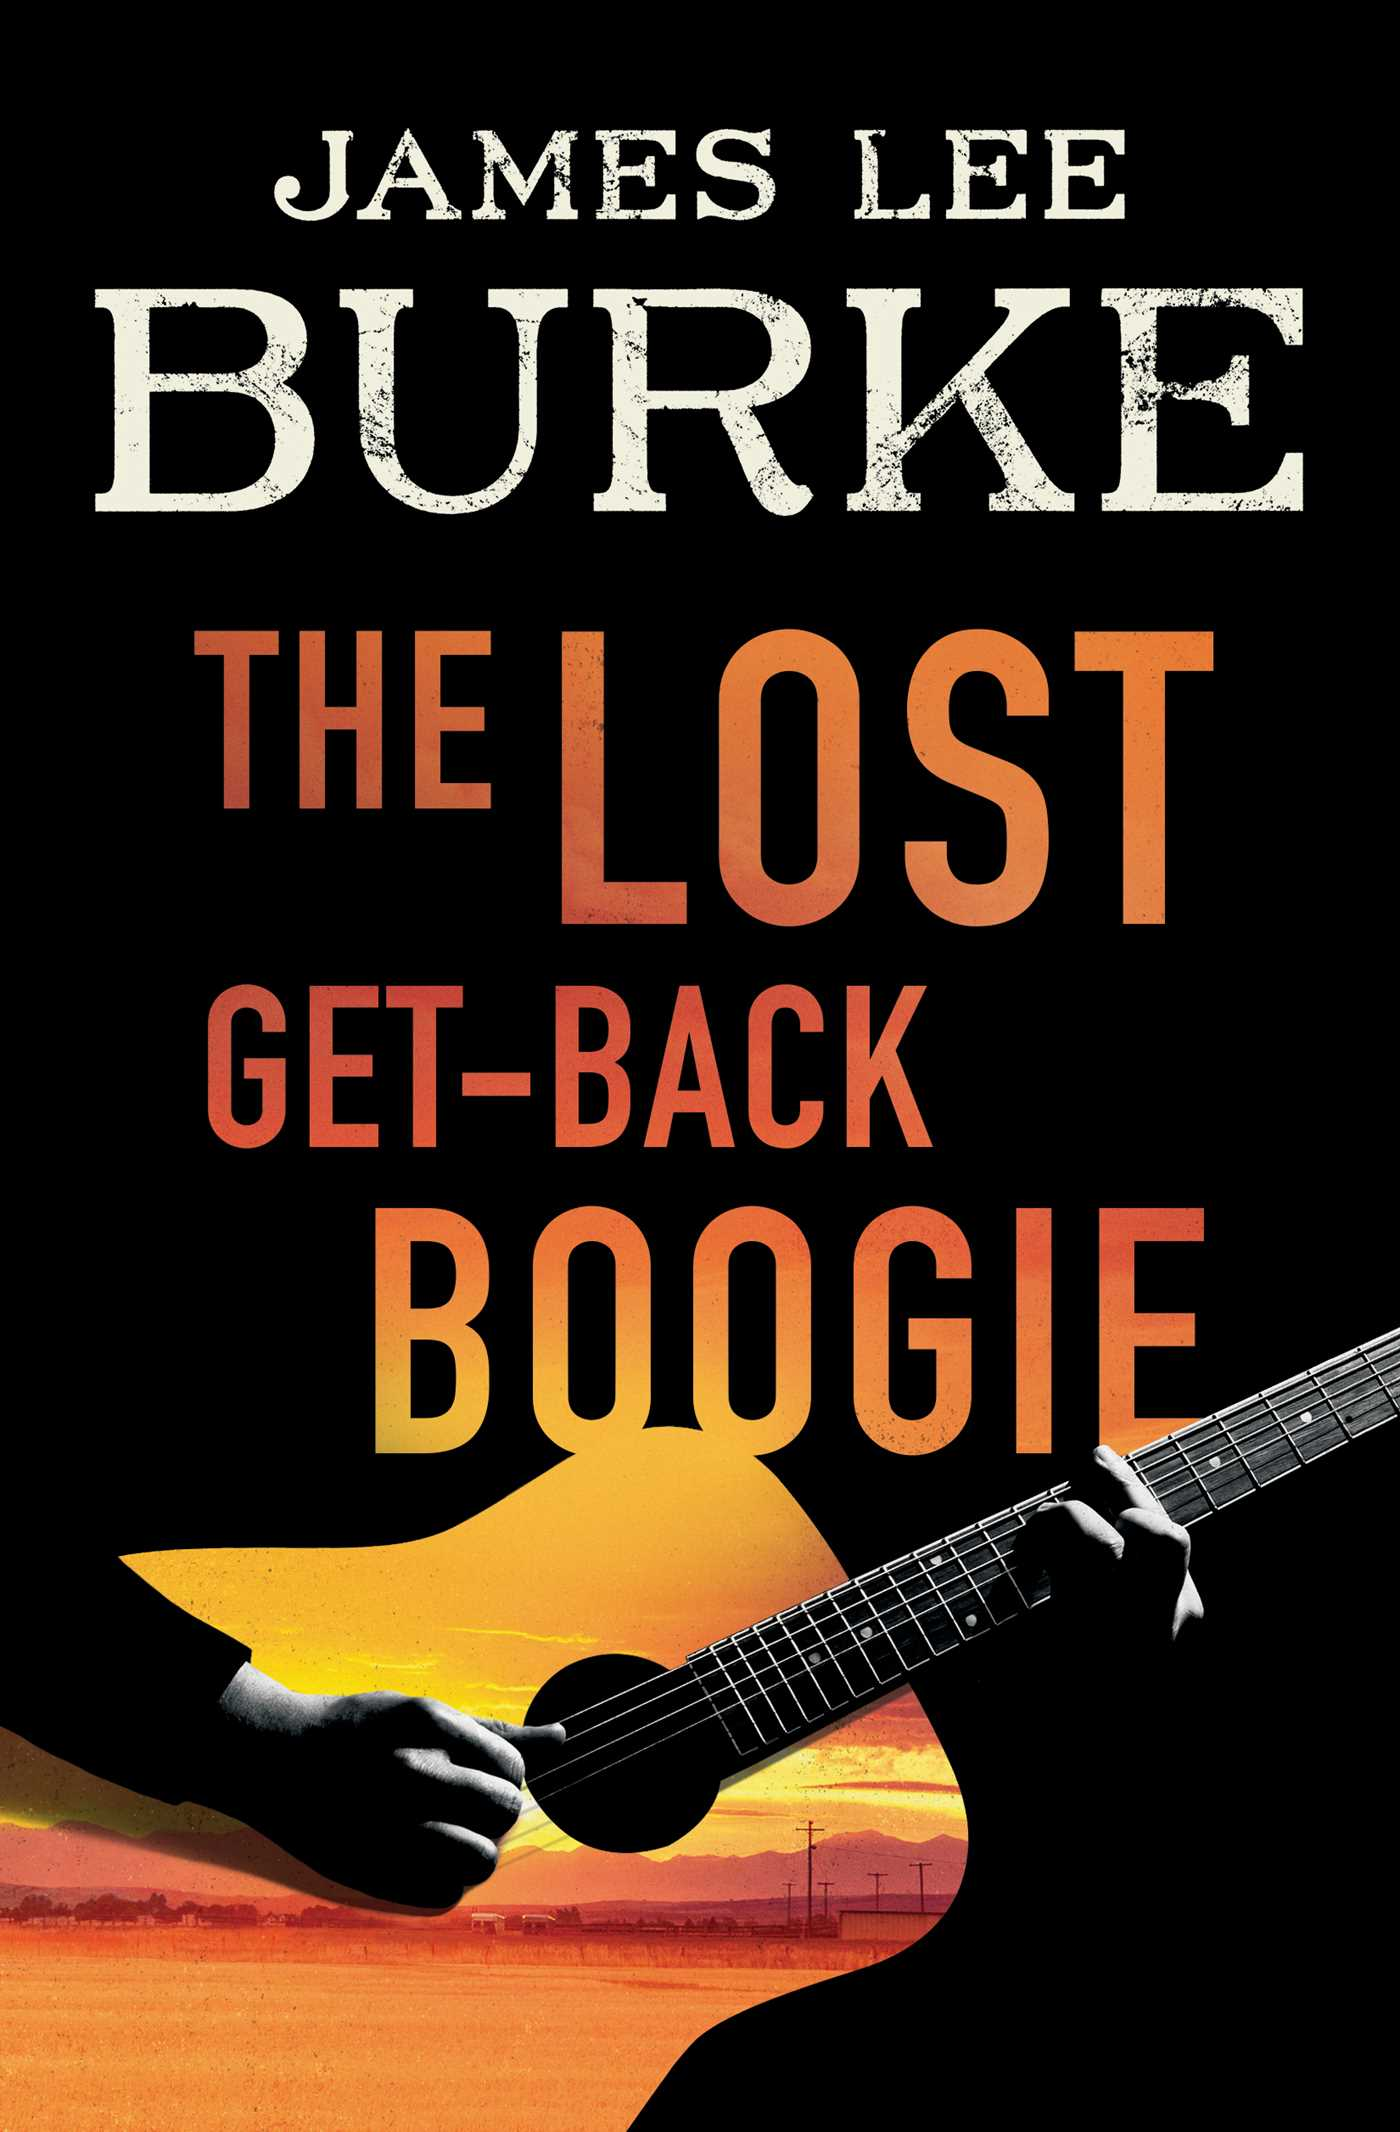 The lost get back boogie 9781451618464 hr